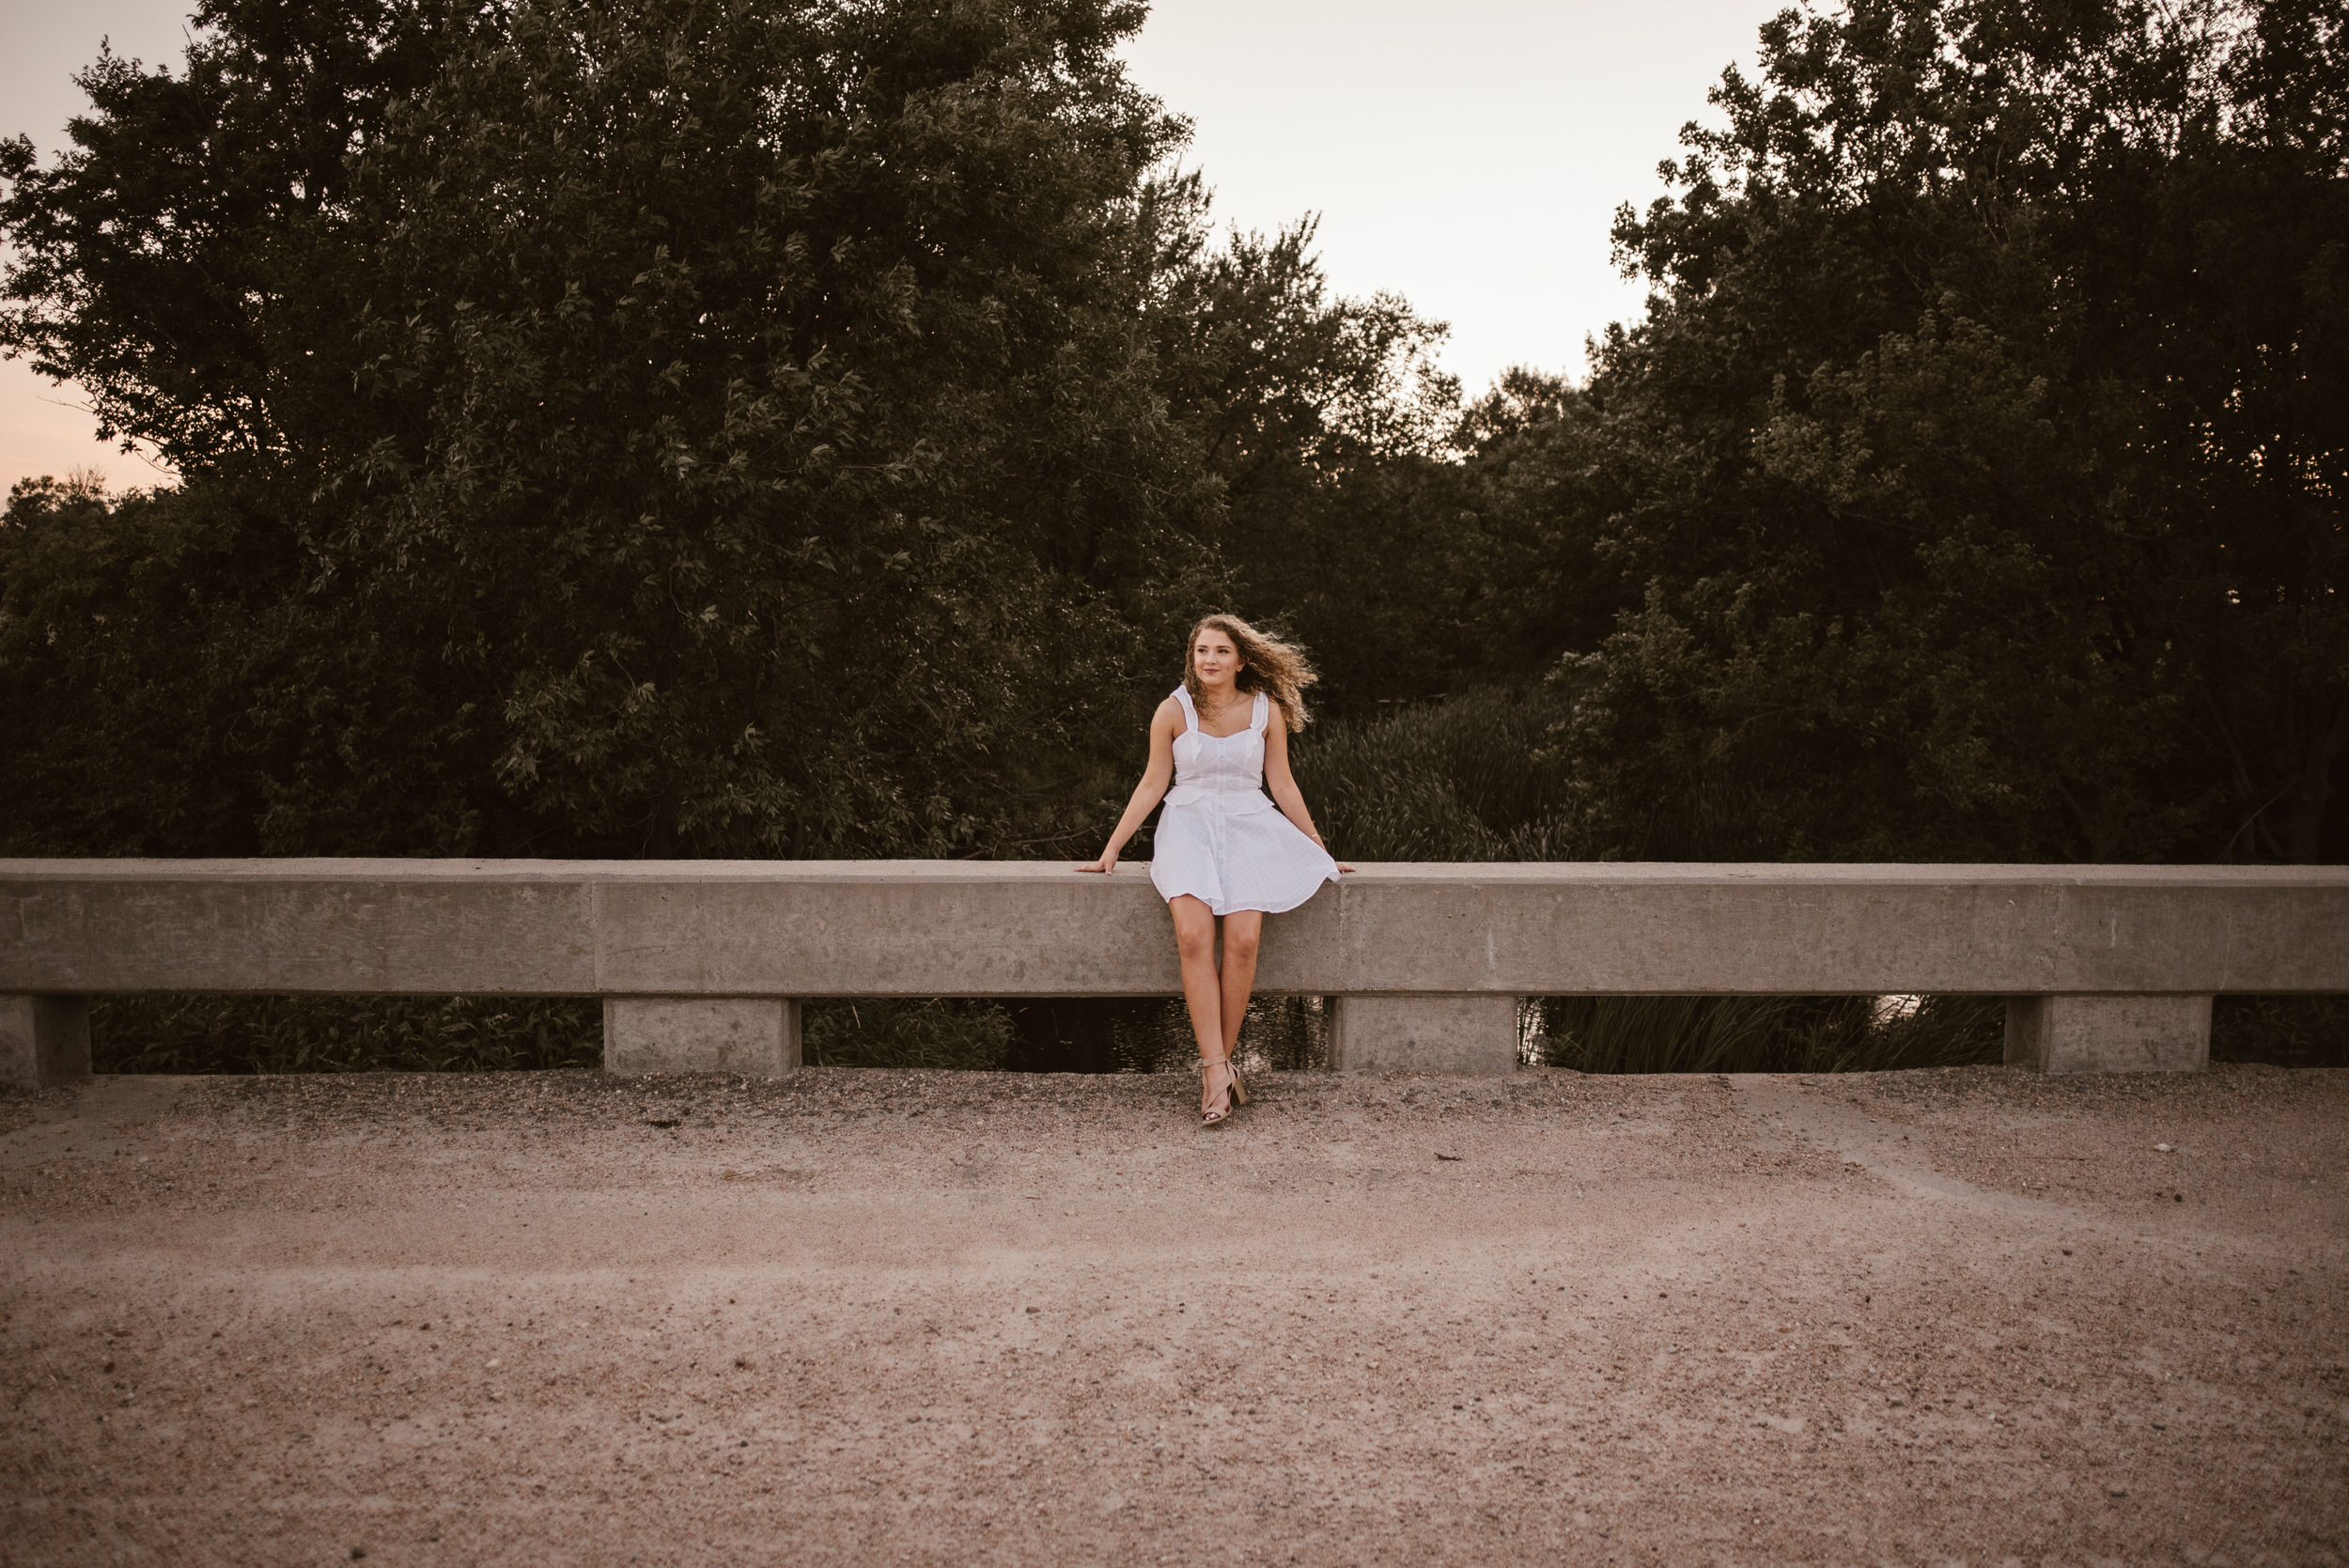 Kaylie-Sirek-Photography-York-High-School-Senior-021.jpg